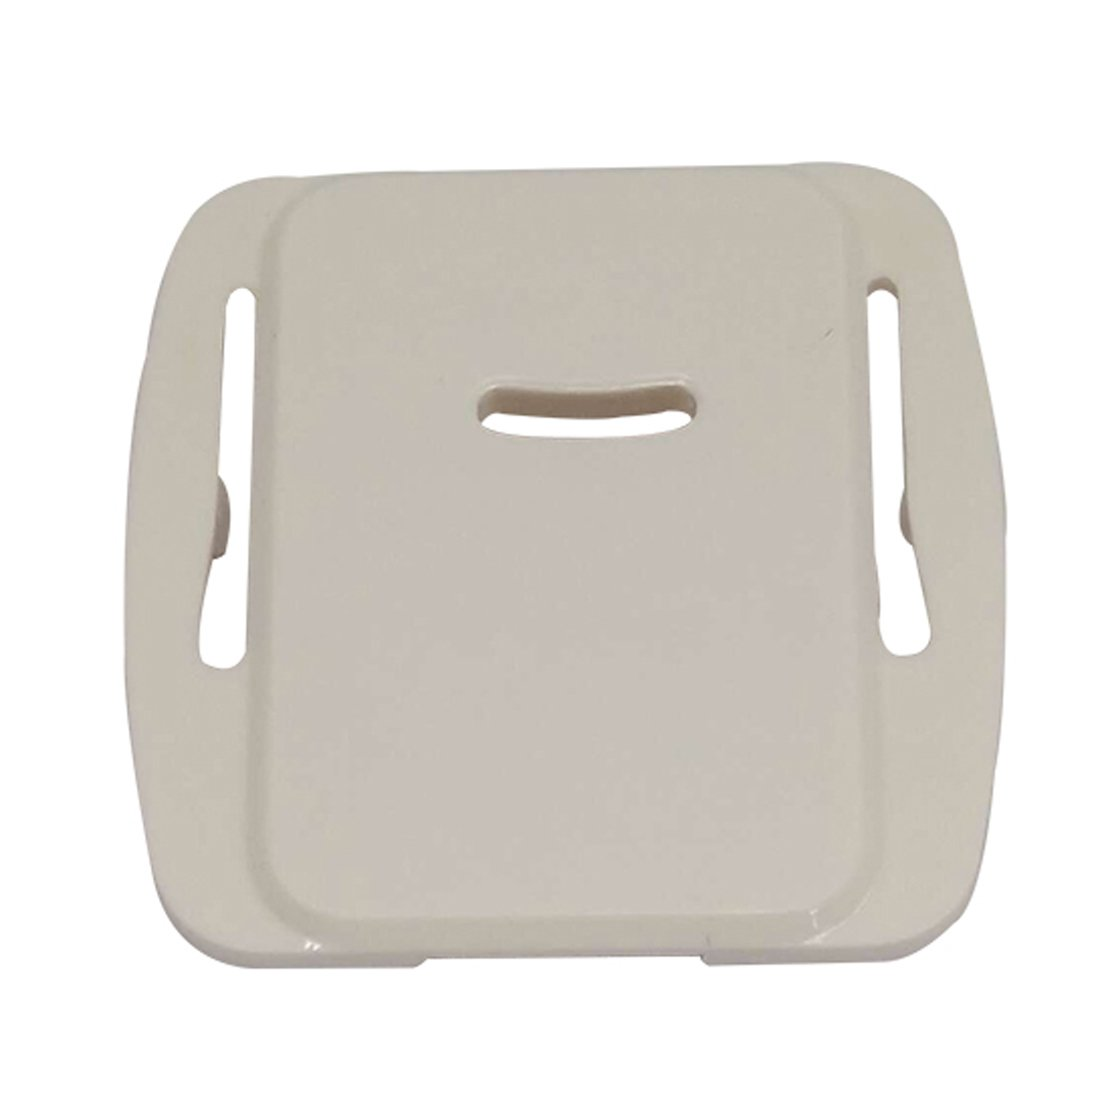 HONEYSEW COVER PLATE FEED DOG COVER DARNING PLATE FOR BROTHER XL3800 BM2700 BM2700AS #XC6063021